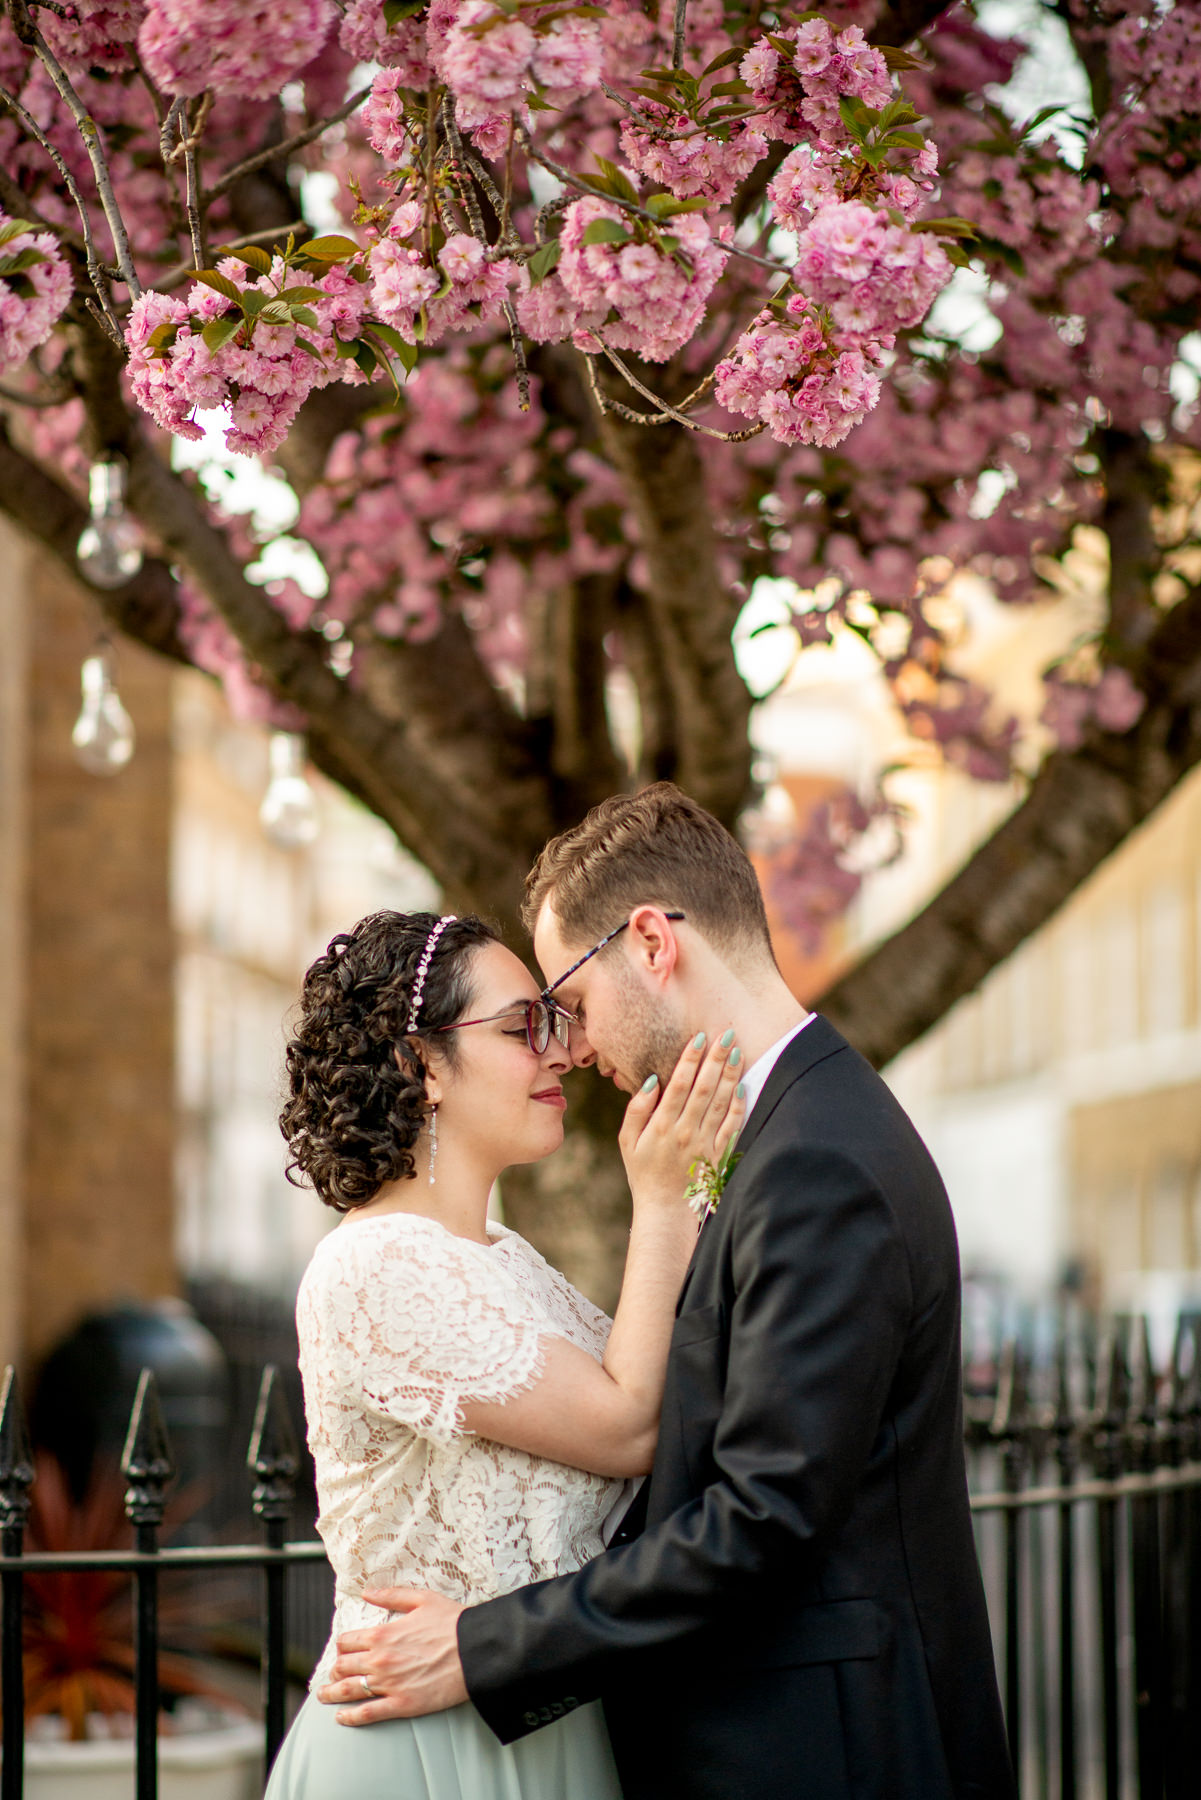 The Green Clerkenwell Pub wedding